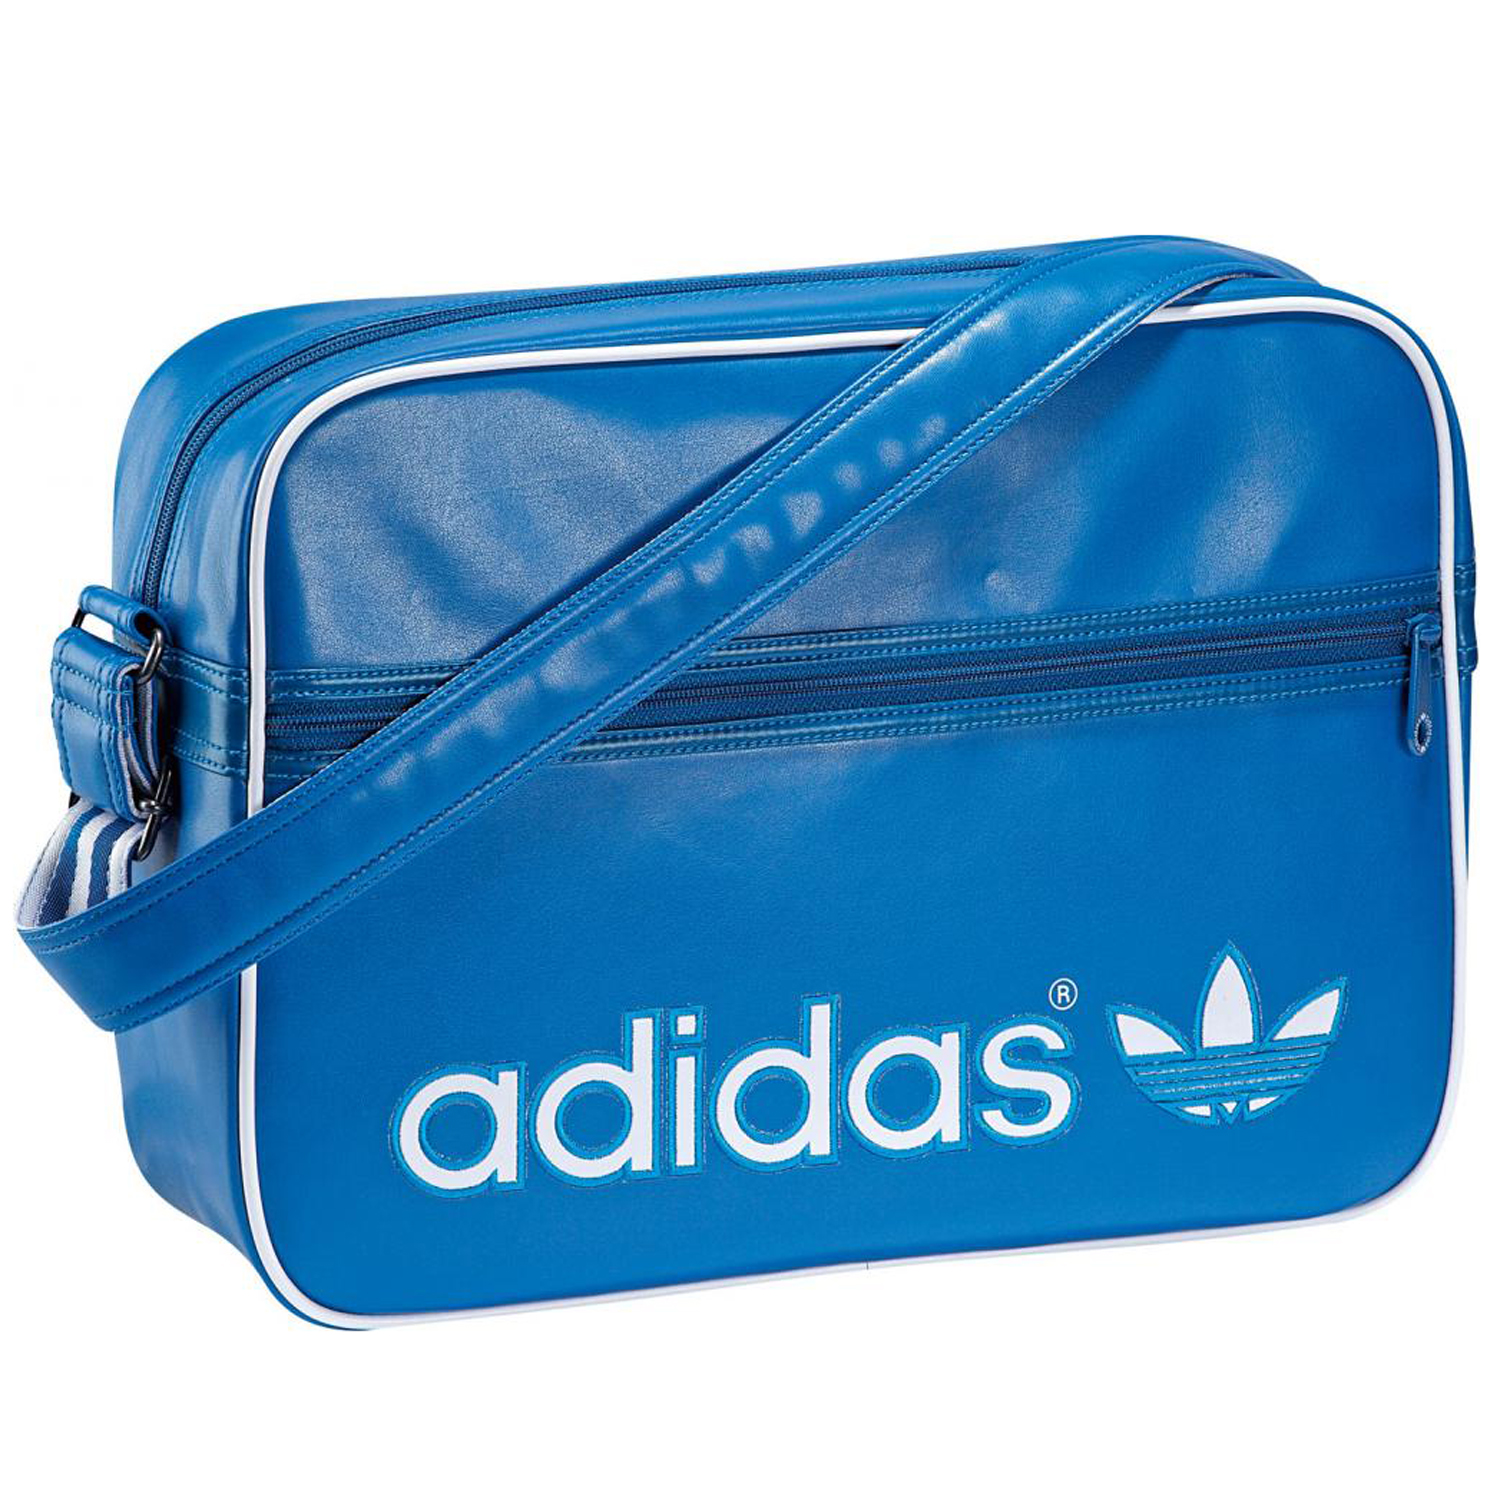 8bbf79f053 Buy adidas side bags   OFF65% Discounted